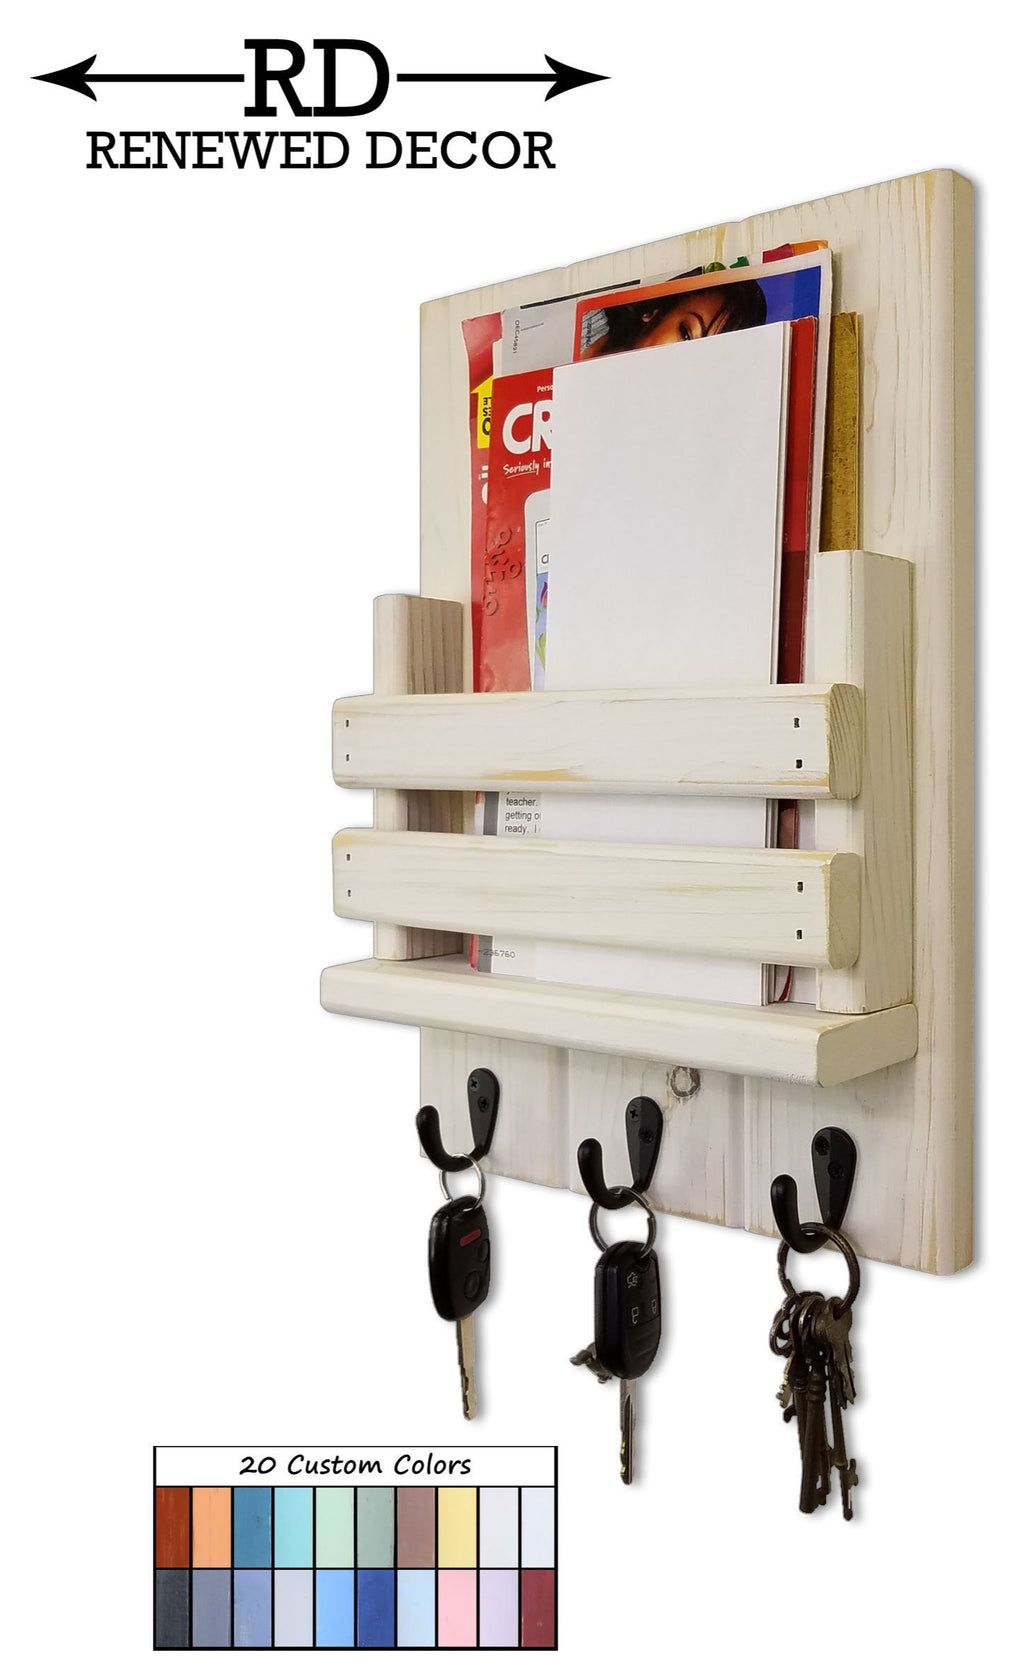 Sydney Slat Front, Mail Holder Organizer and Key Holder, Available with up to 3 Single Key Hooks – 20 Colors: Shown in Antique White - Renewed Decor & Storage